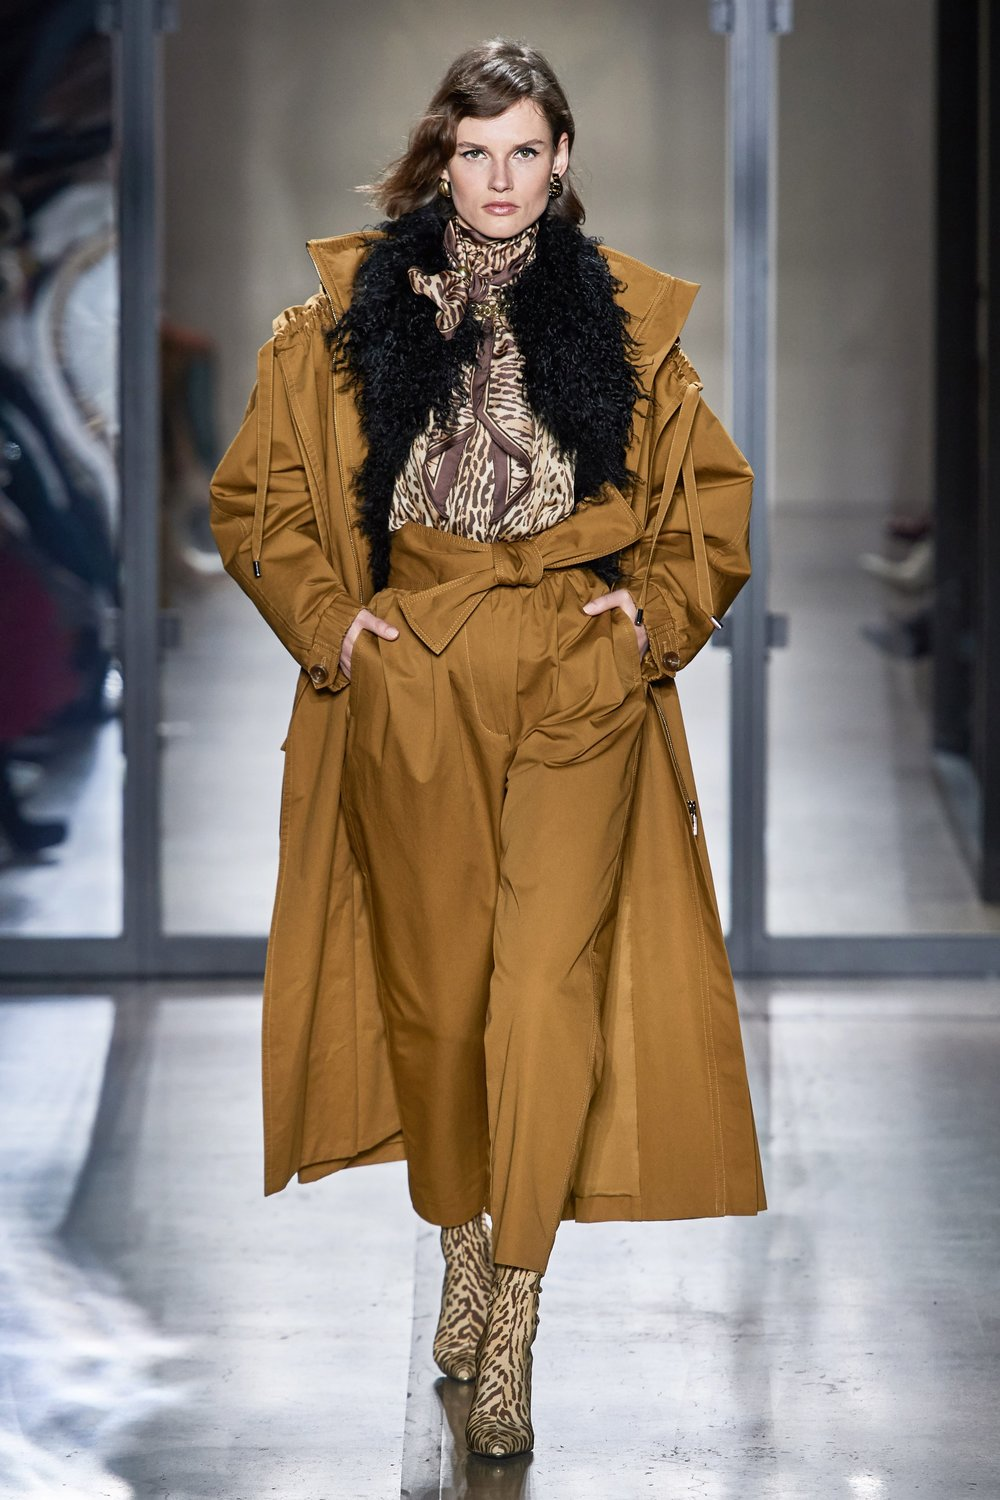 Paper Bag or Stovepipe pant - Casual and tailored - Zimmermann